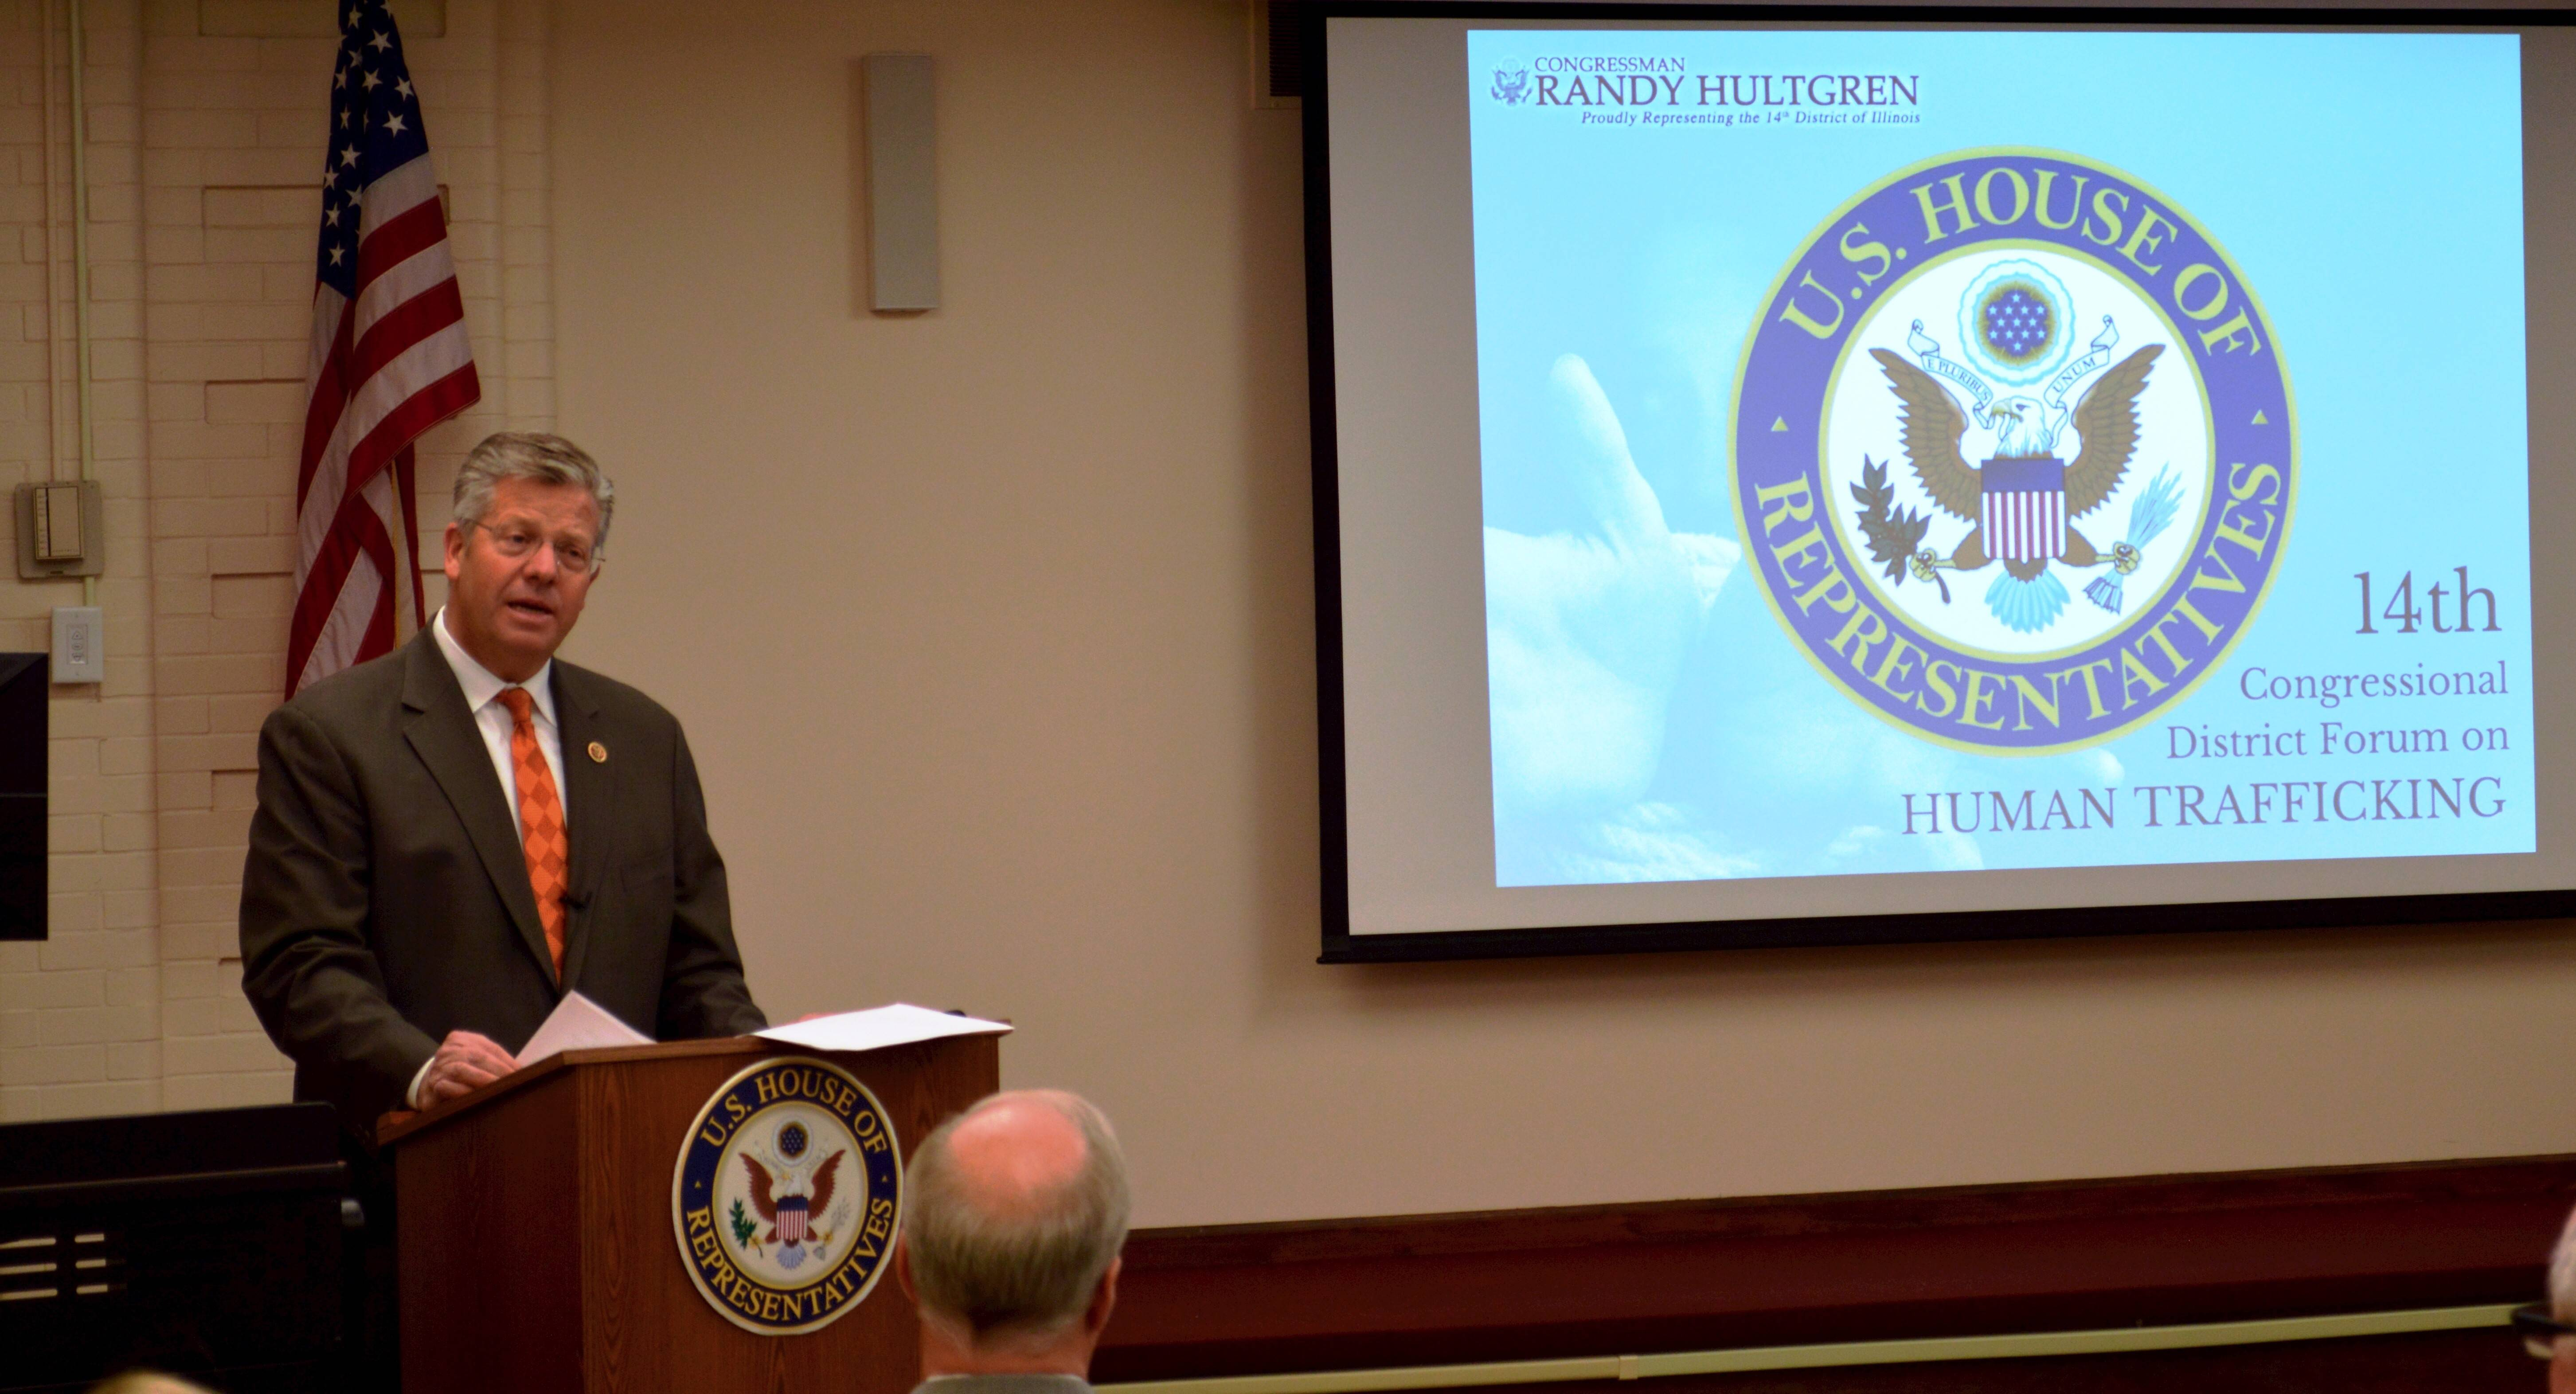 Congressman Randy Hultgren hosted a forum with local human sex trafficking experts in Geneva Thursday night. FBI and nonprofit groups called on local residents and governments to address the problem of 25,000 human sex slaves trafficked through the area each year.